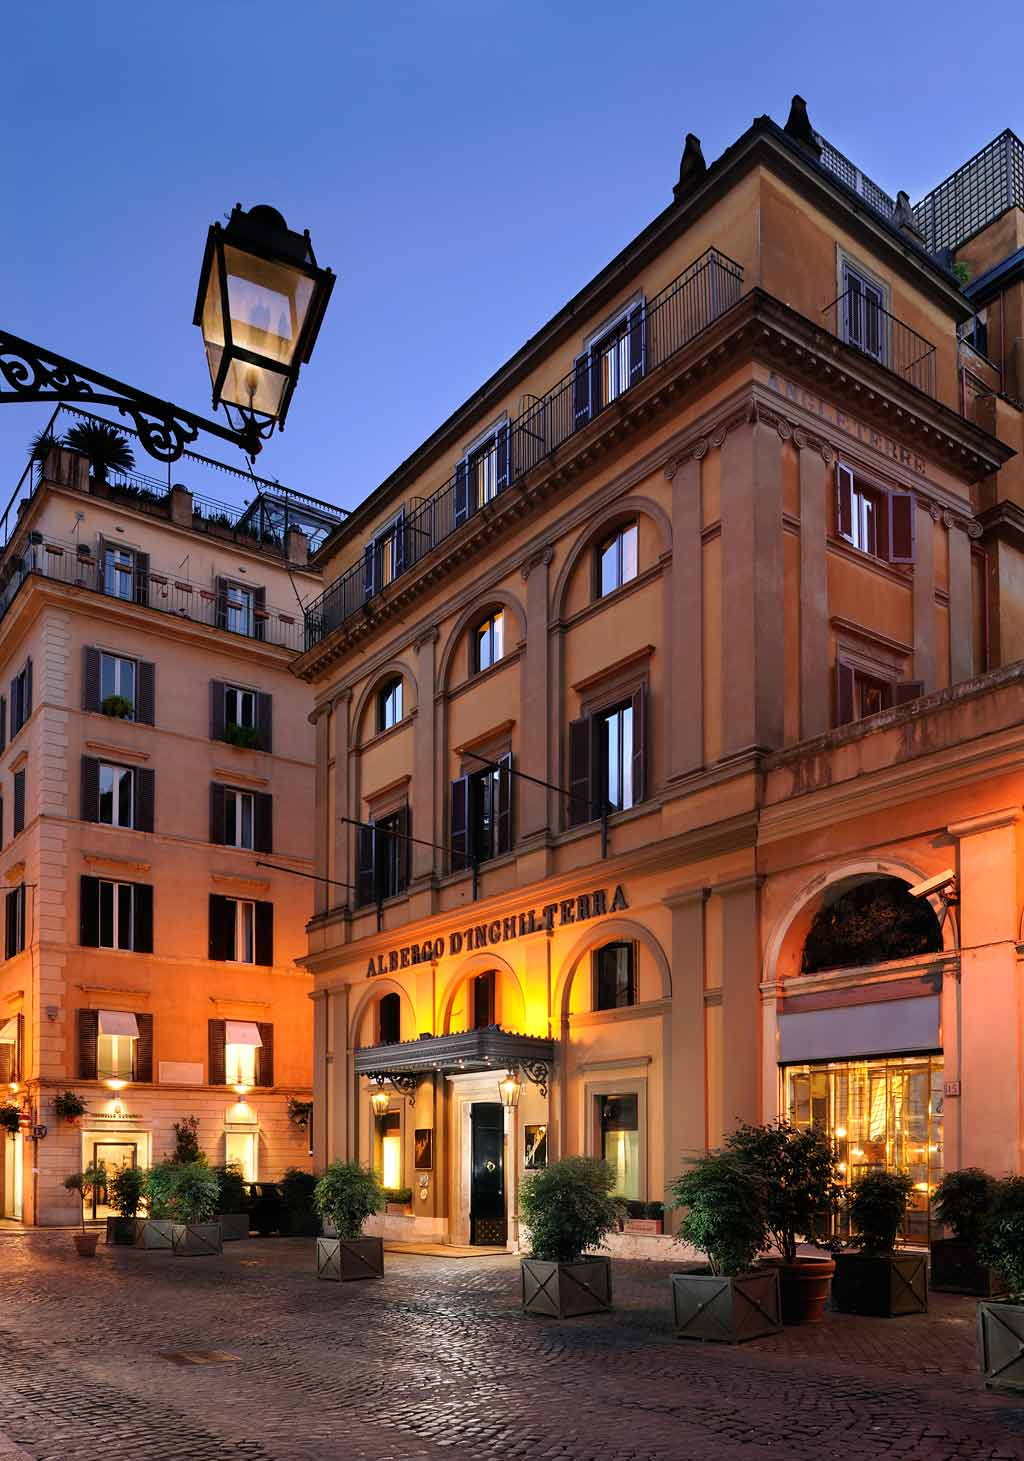 Hotel d'Inghilterra Rome, Italy